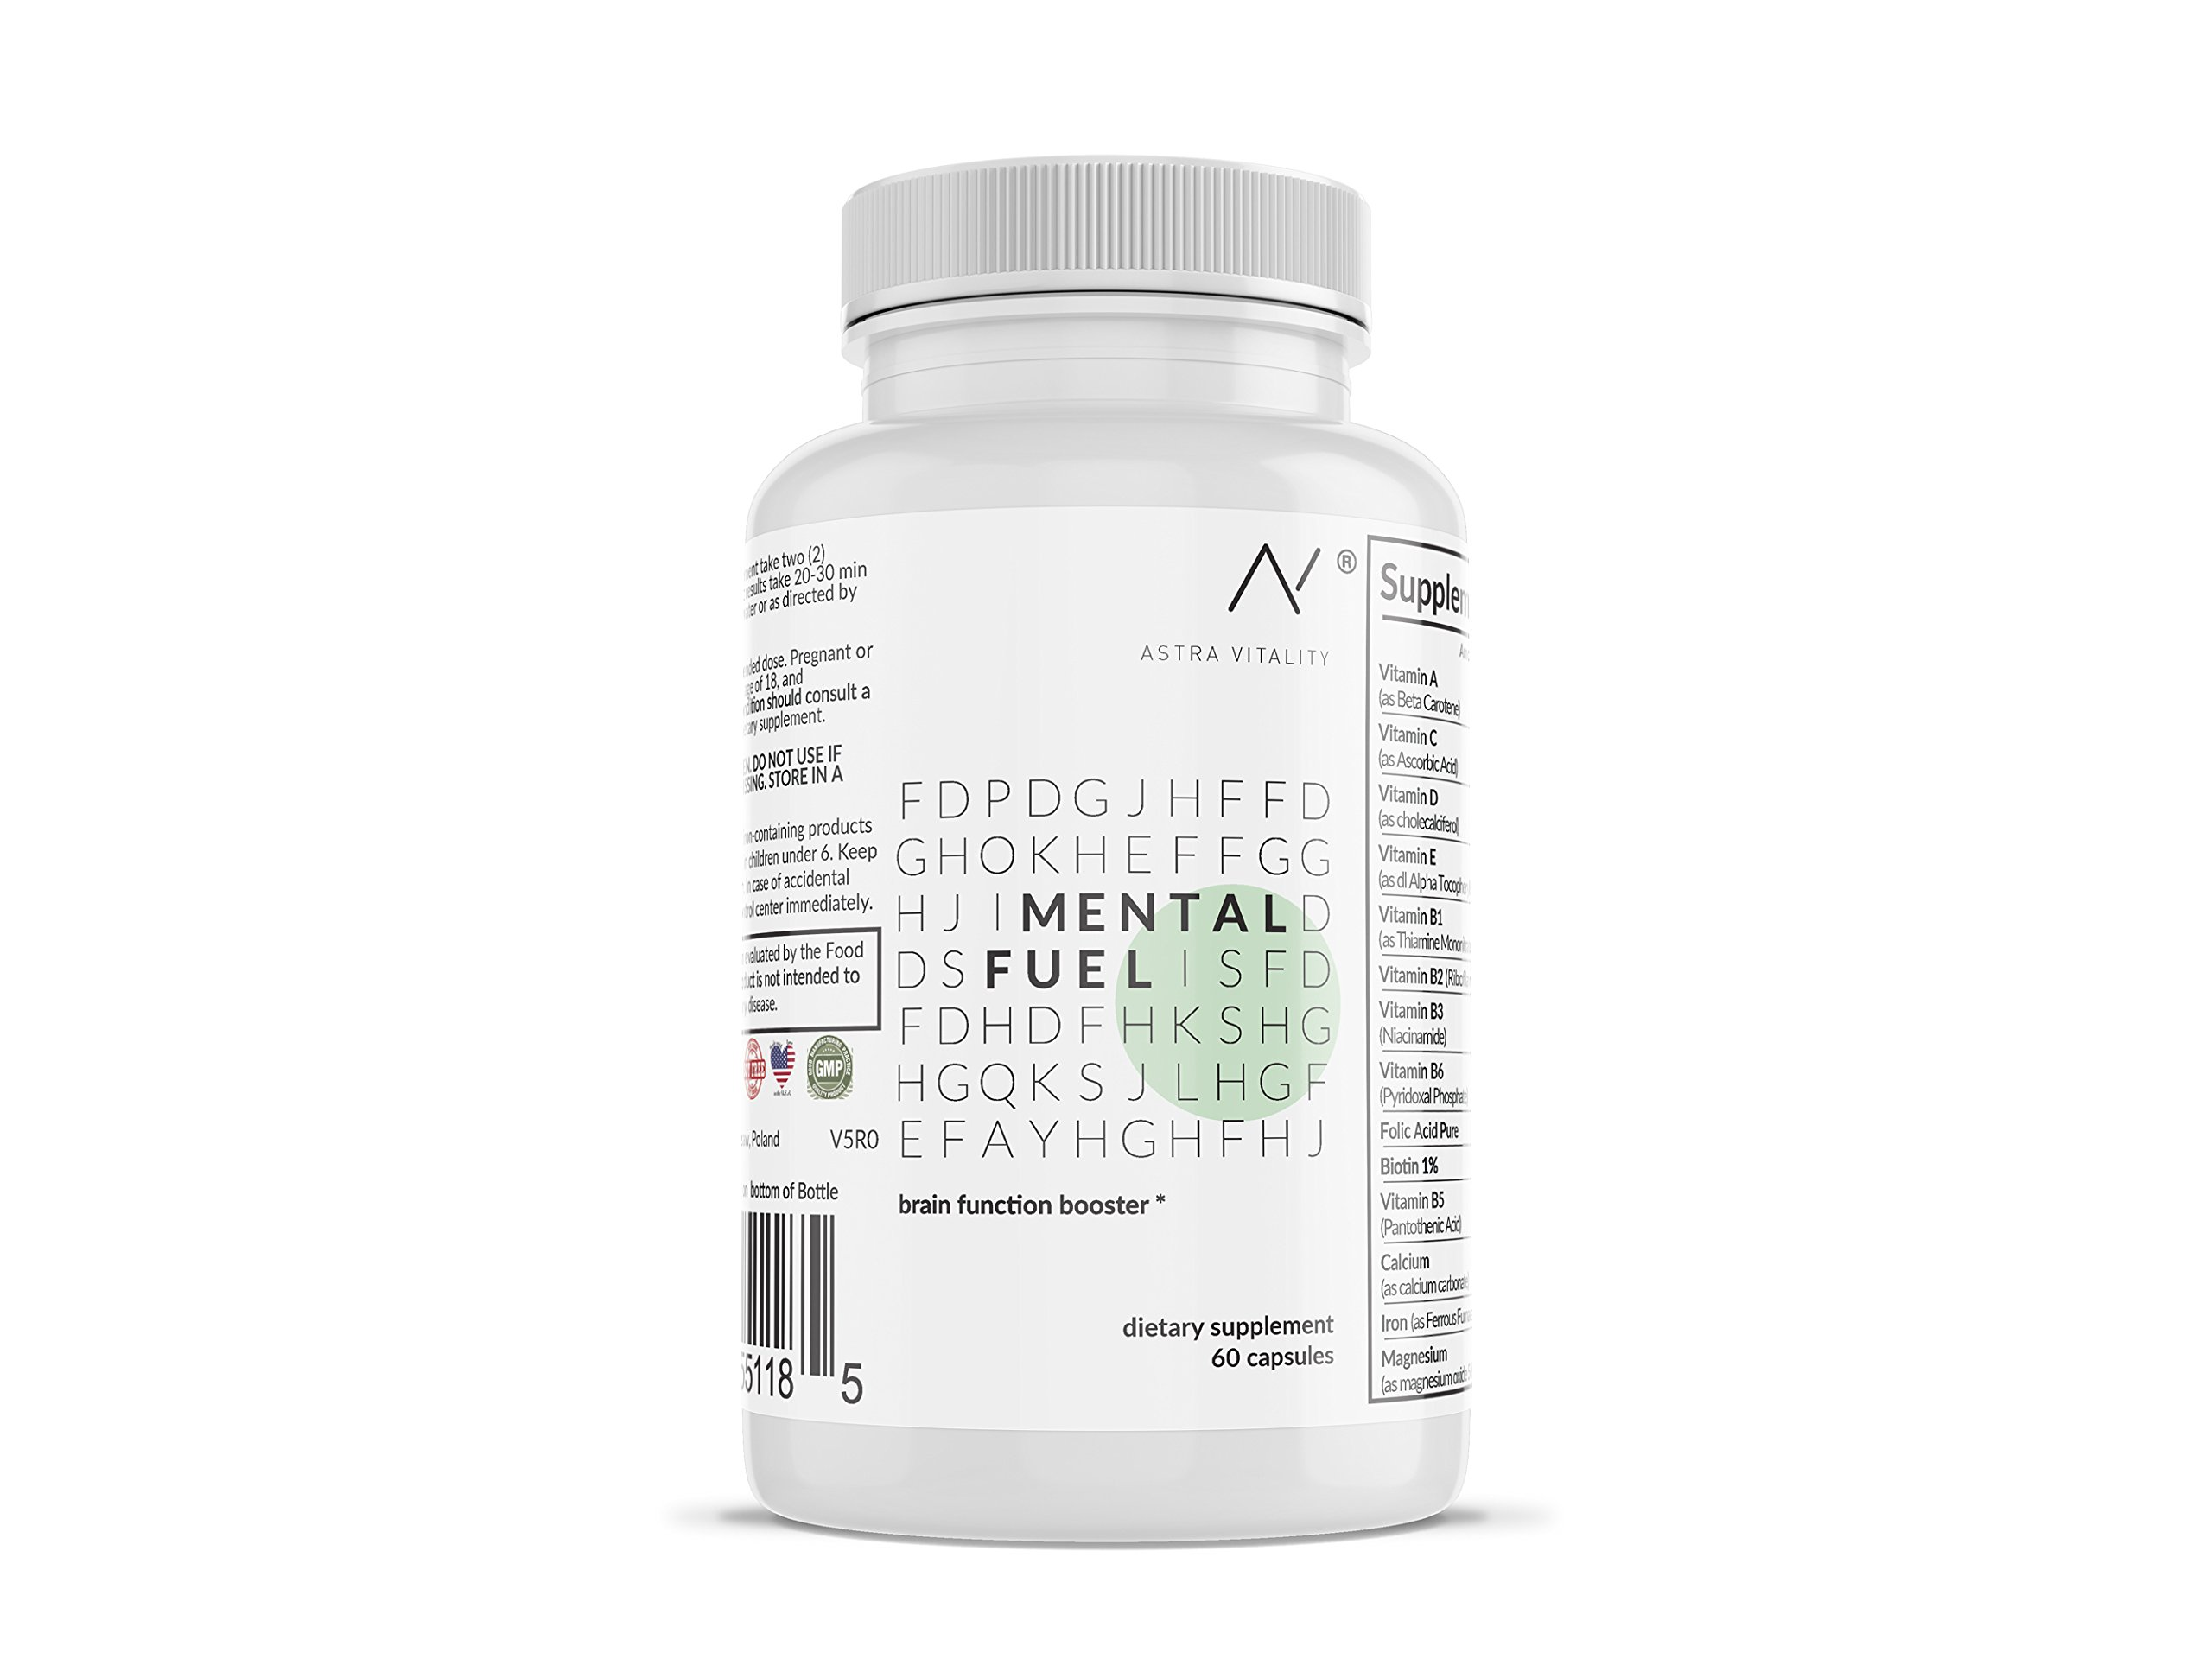 NOOTROPICS | High Strength (690mg) | Full 30-Day Supply | A Powerful & Advanced Brain Booster | Increase Mental Alertness, Energy Levels, Concentration w/Our Potent Focus Supplement by ASTRA VITALITY